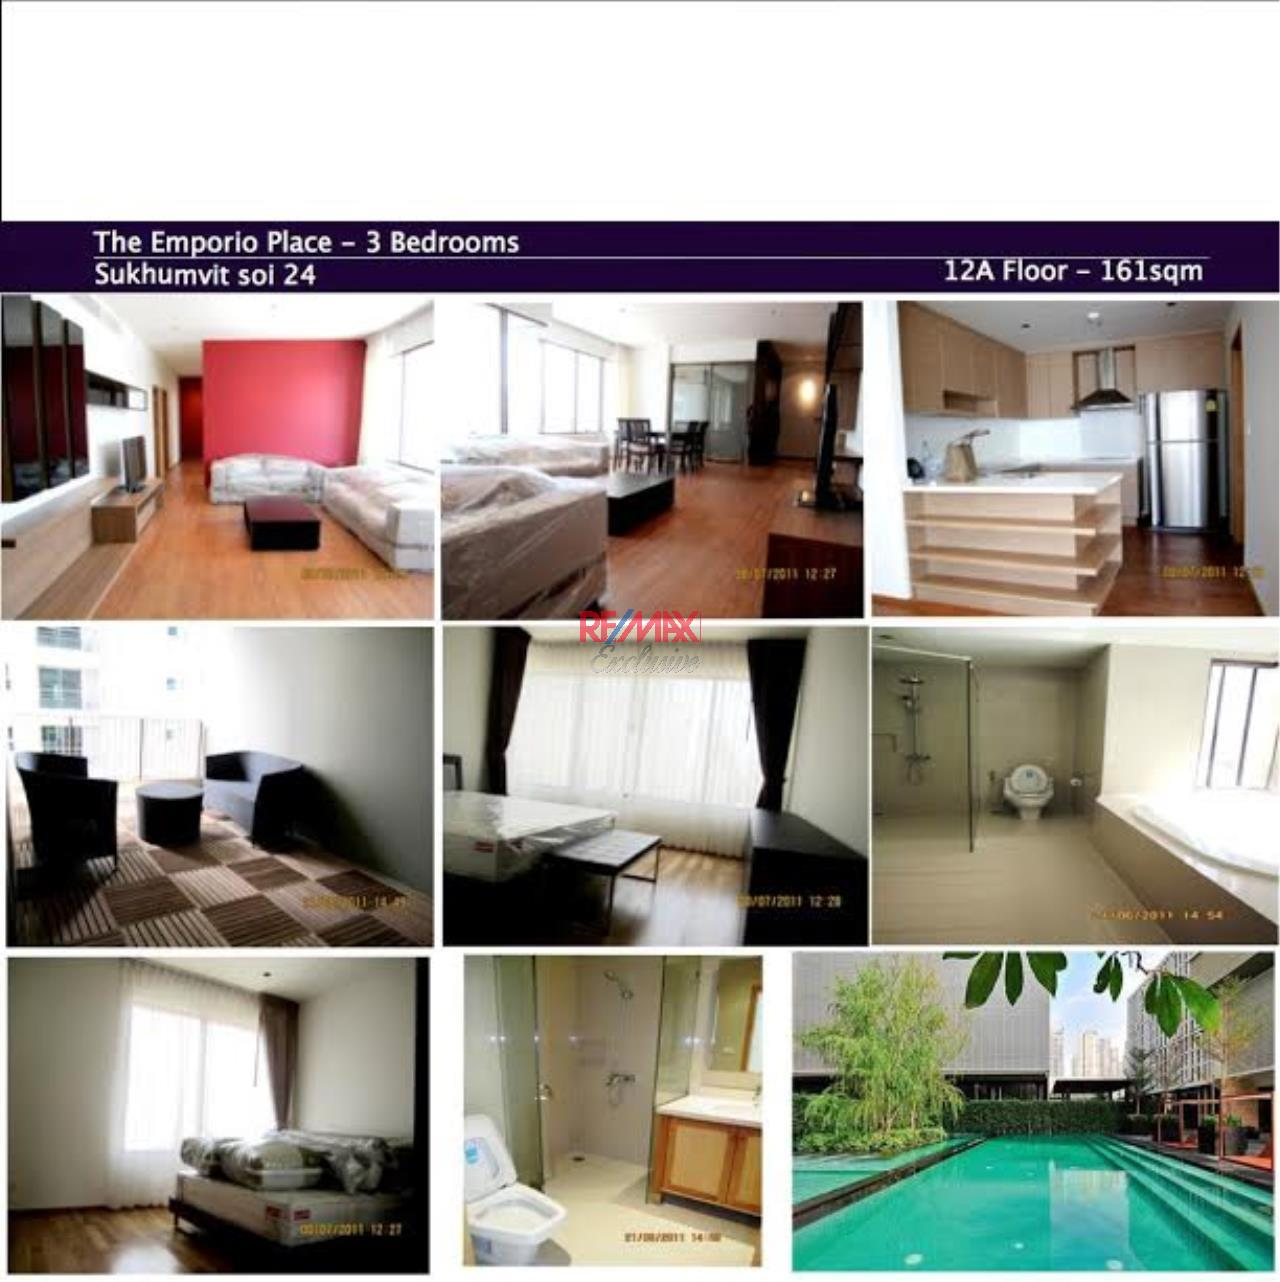 RE/MAX Exclusive Agency's Emporio Place, 3 Bedrooms, 3 Bathrooms, Only For Sale 26,000,000 THB 1